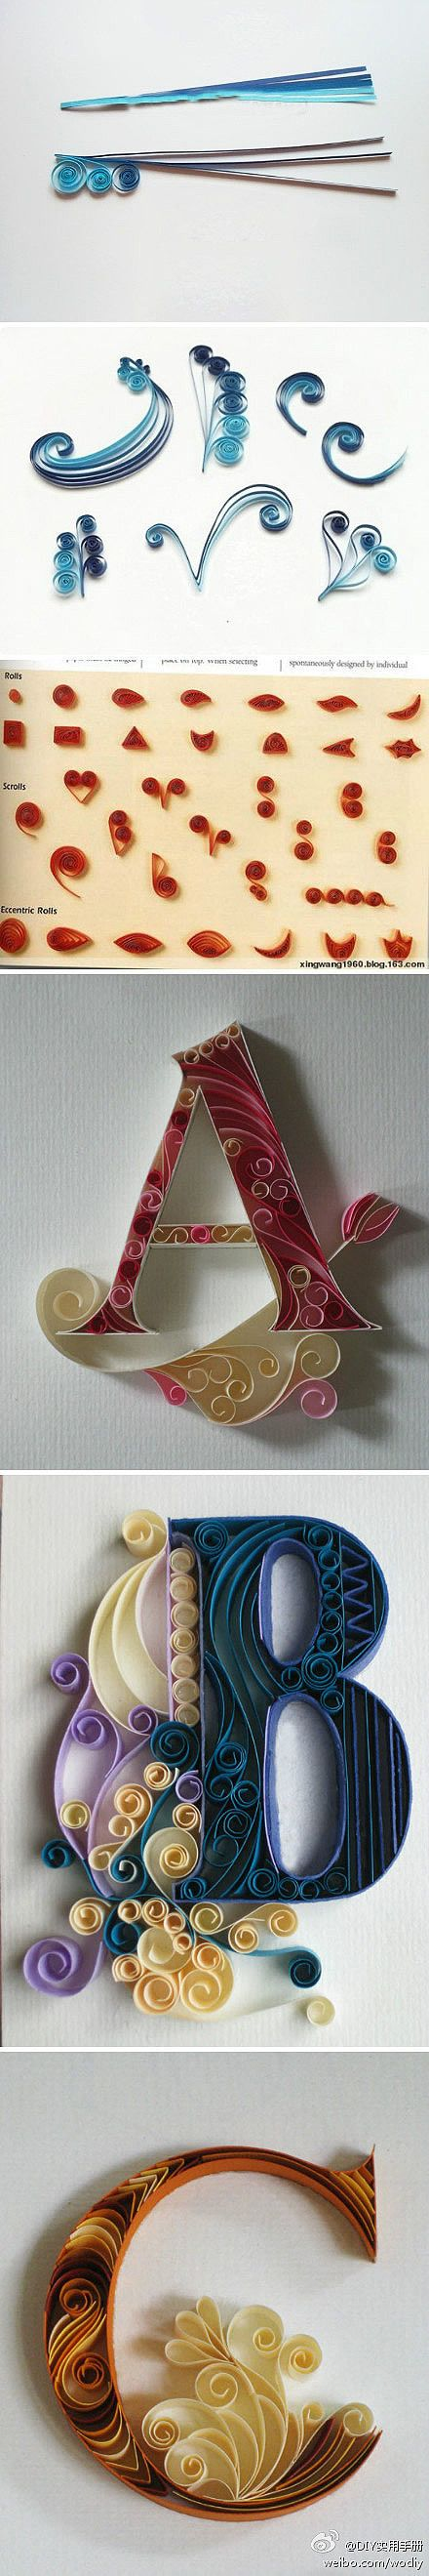 Quilled letters, wall art